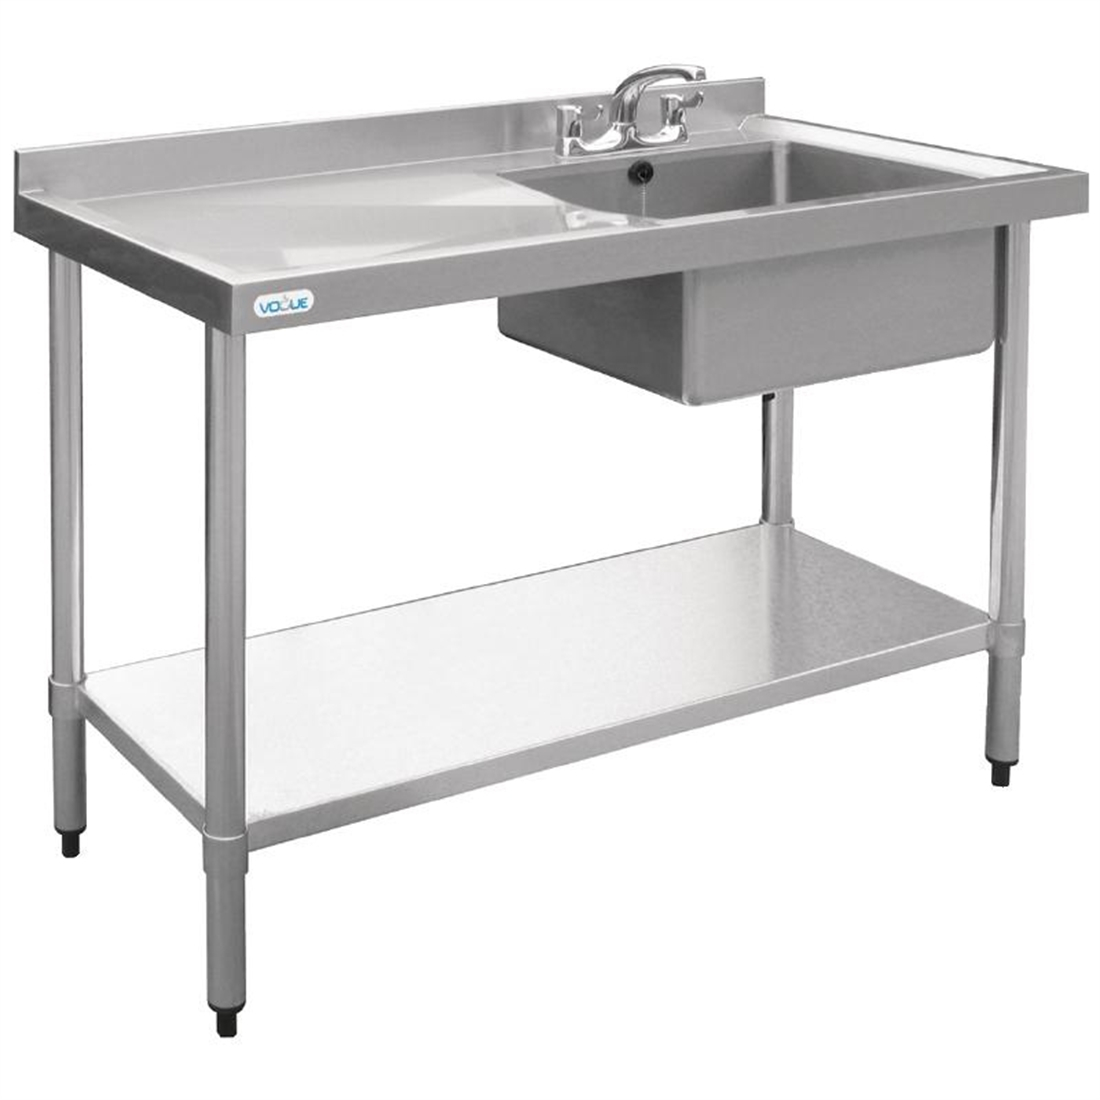 Vogue Stainless Steel Sink Right Hand Bowl 1200x600mm